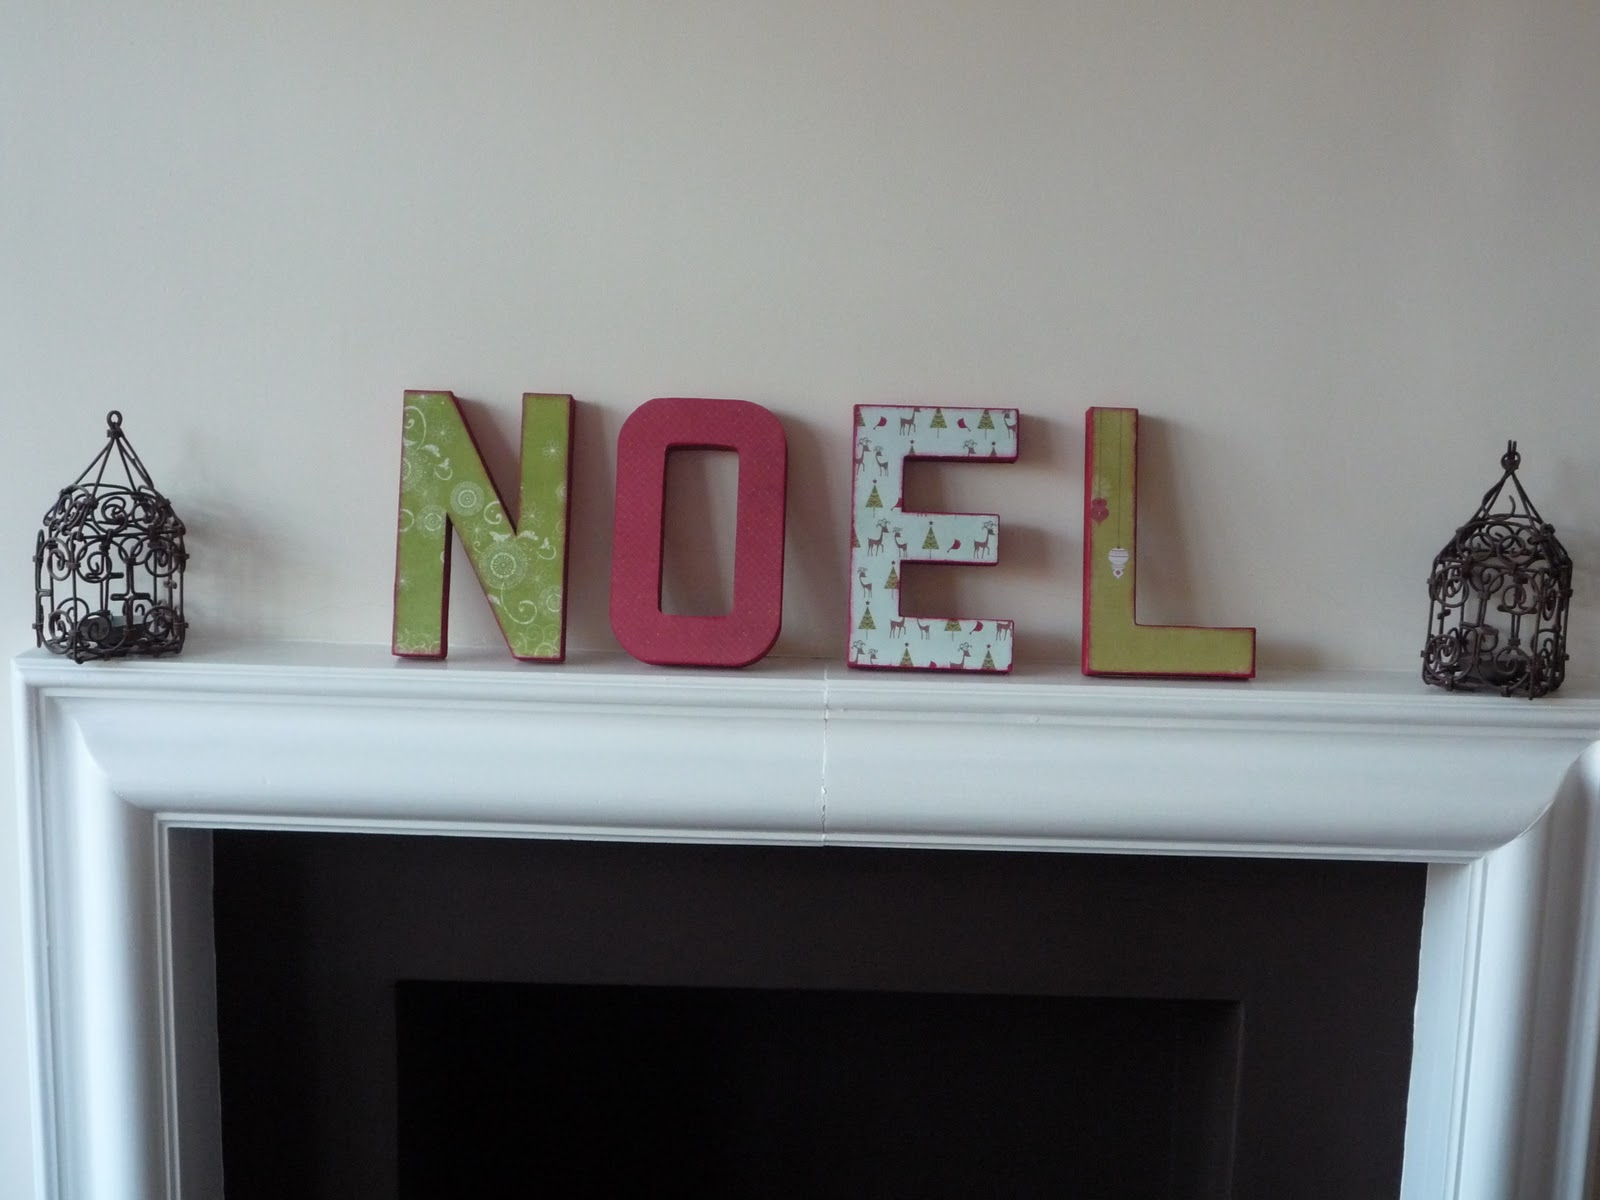 That cute little cake noel letters for Decoration 11 letters